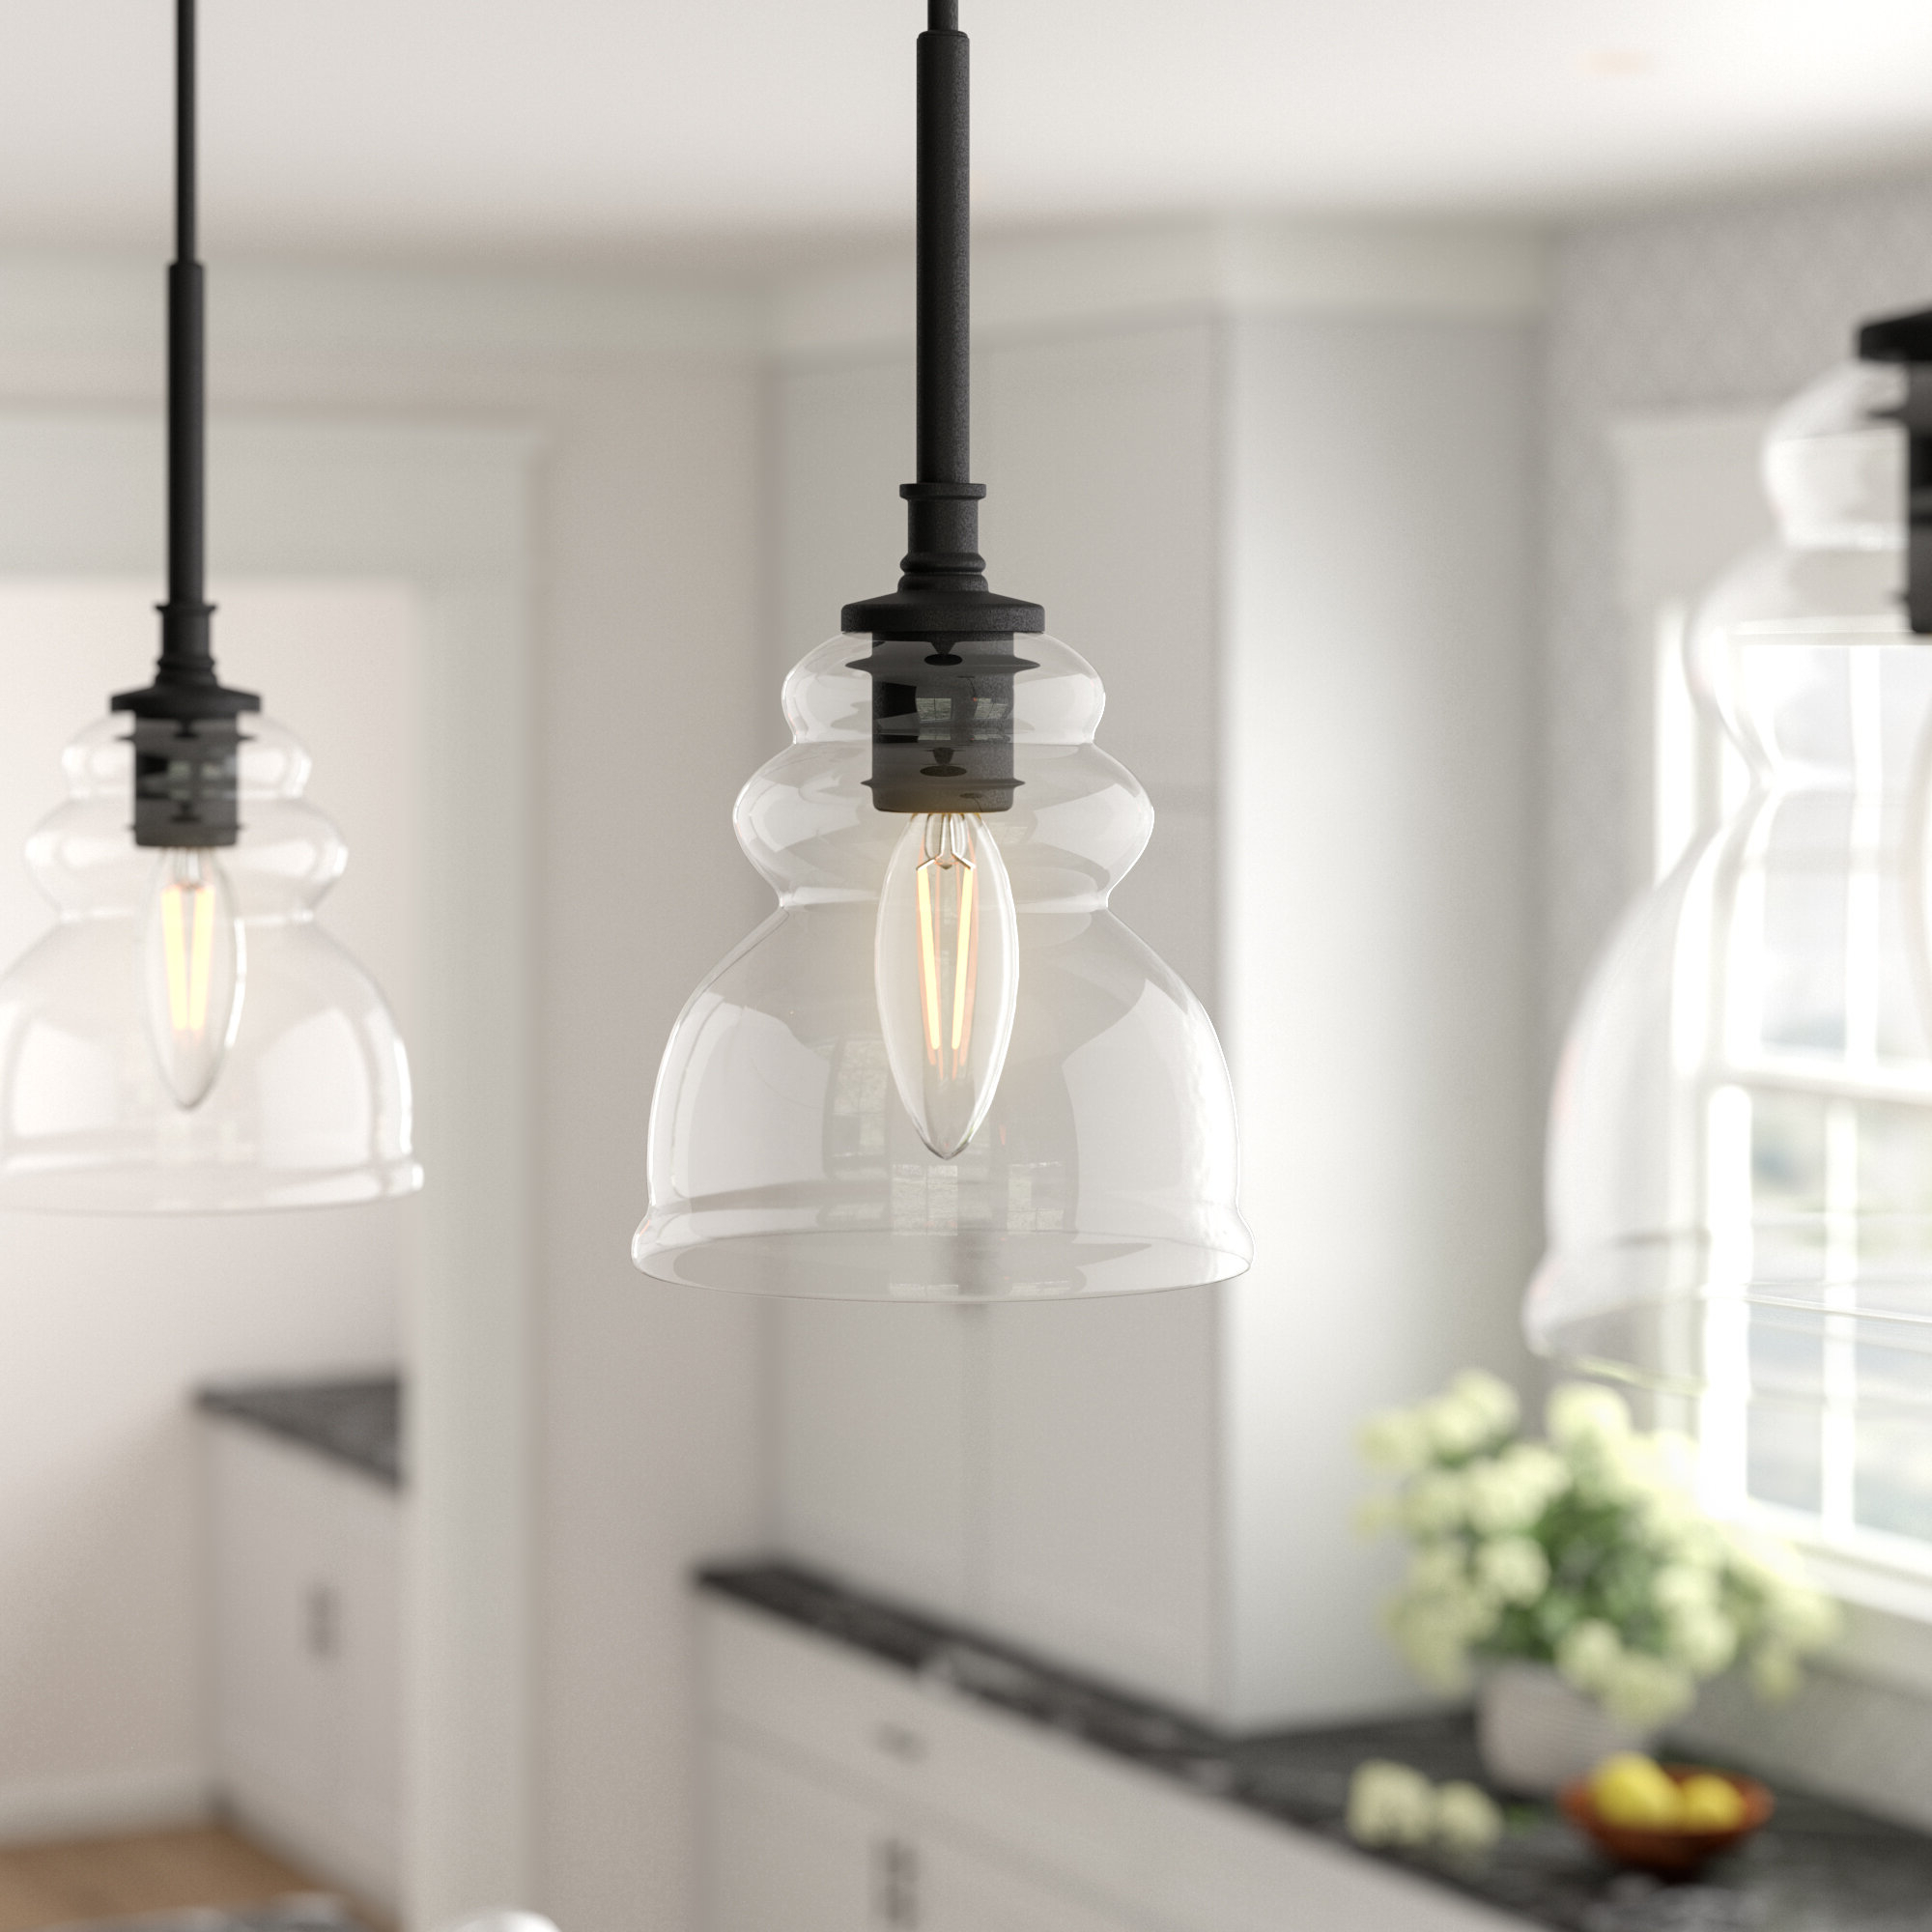 Goldie 1 Light Single Bell Pendants Throughout Fashionable Arla 1 Light Single Bell Pendant (Gallery 4 of 20)